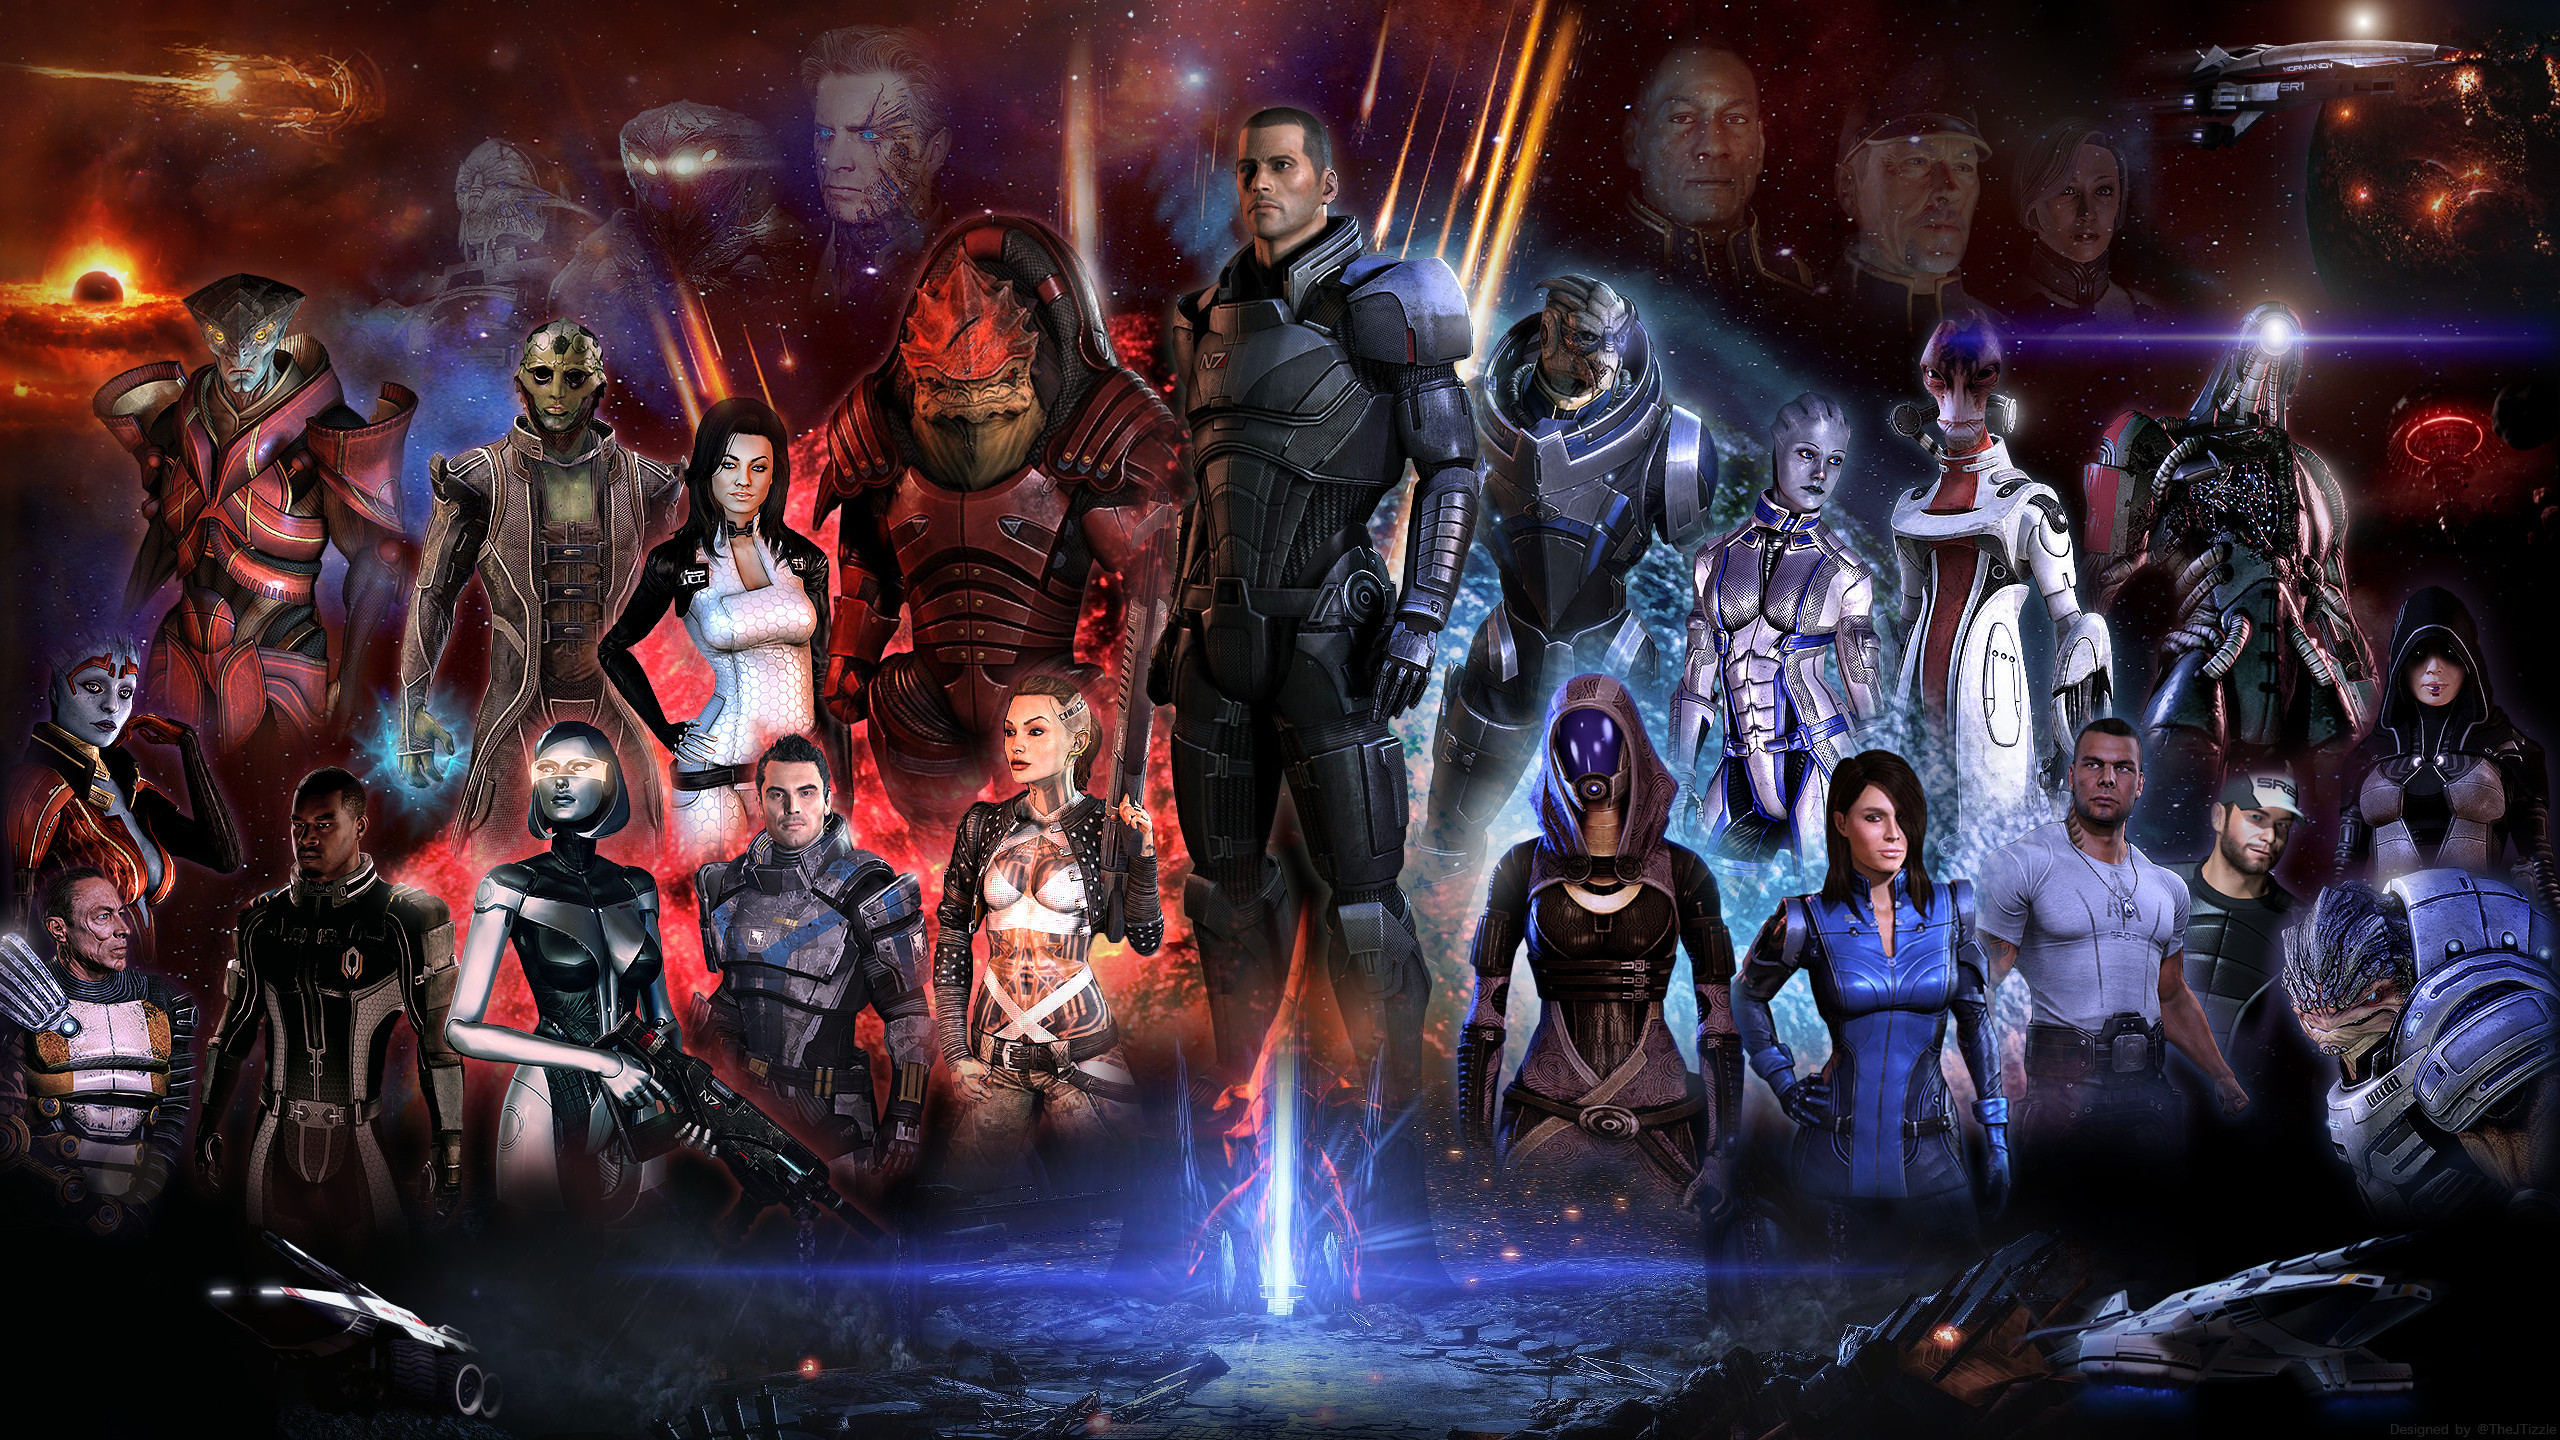 Mass Effect Trilogy Wallpaper